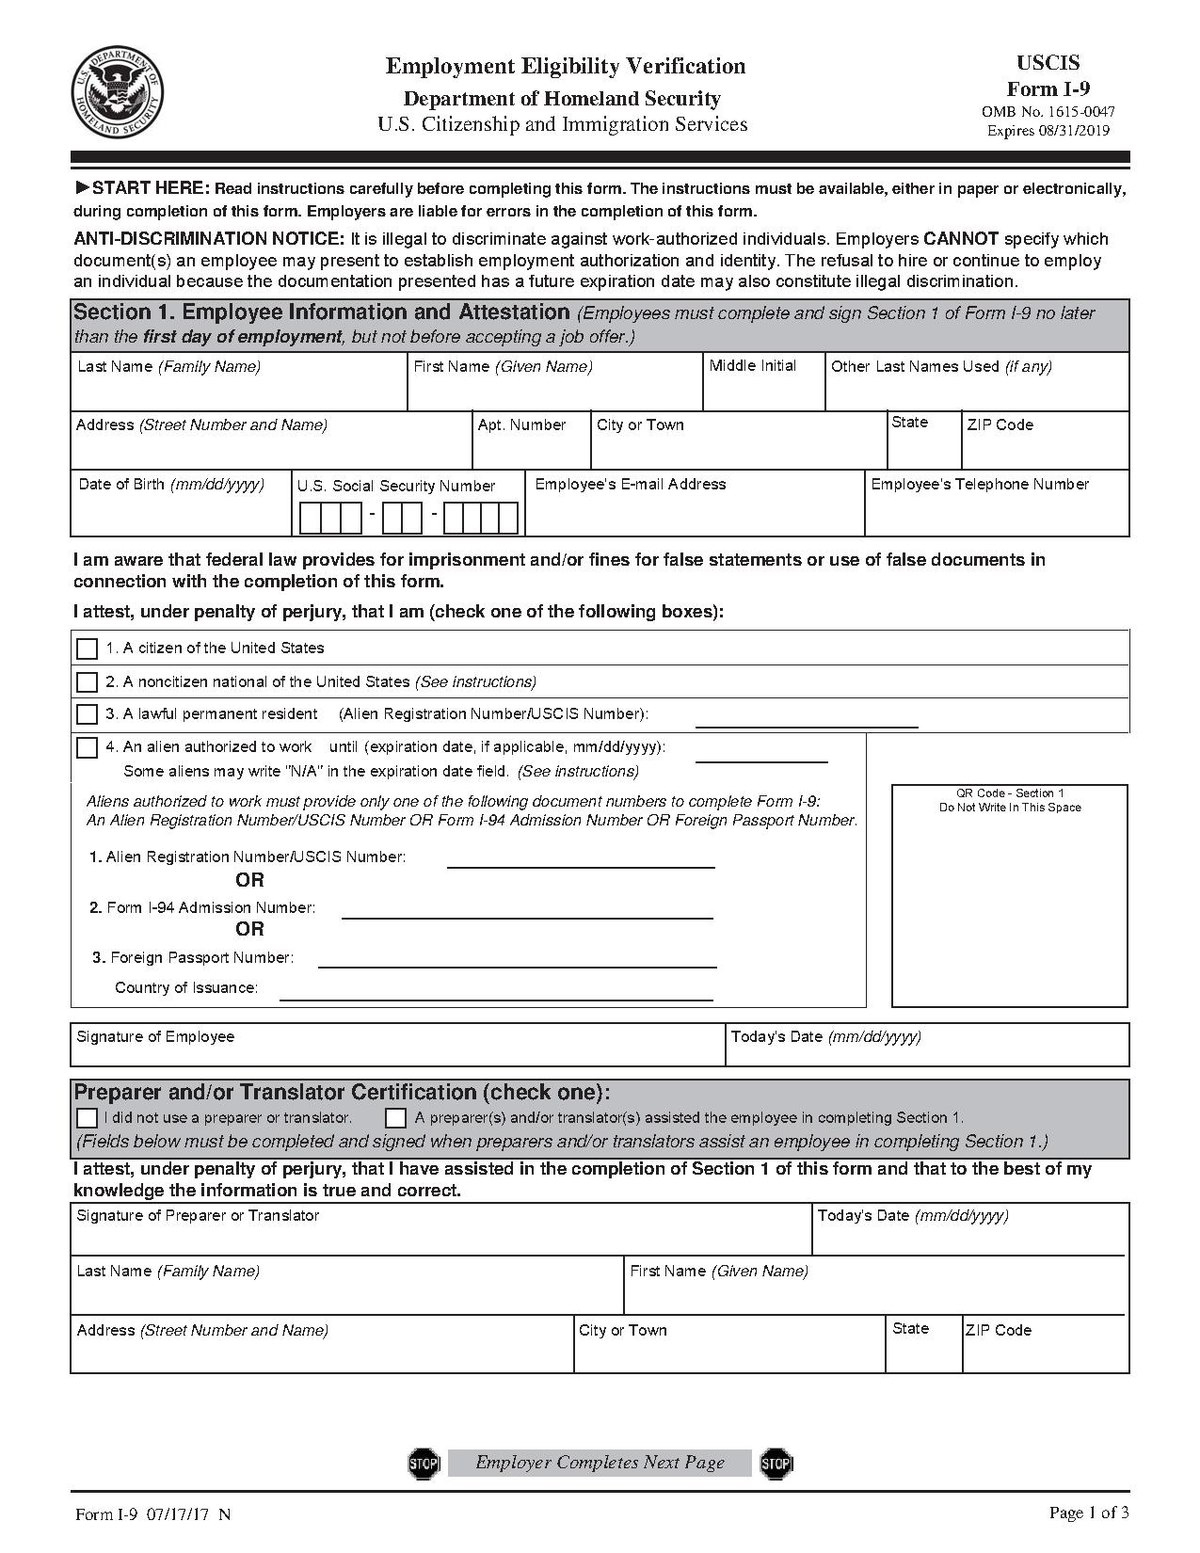 Department Of Homeland Security Form I-9 | I9 Form Printable